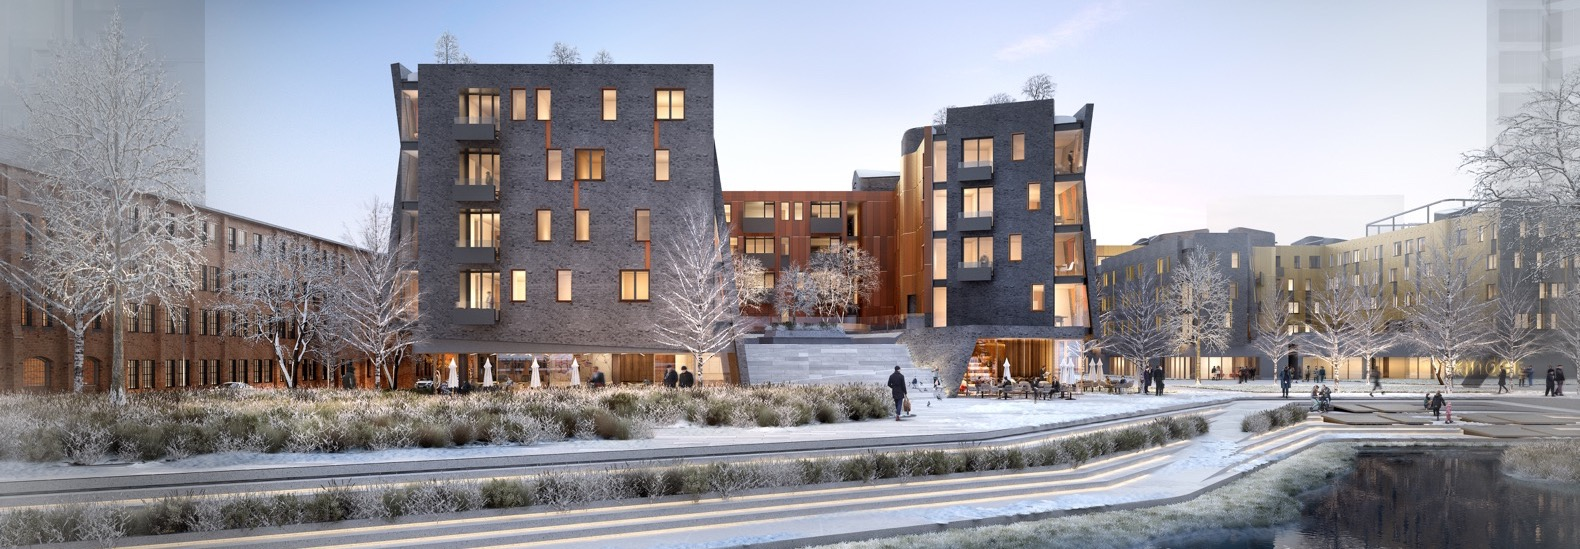 Net Zero Community Planned For Hamburg Will Rely On